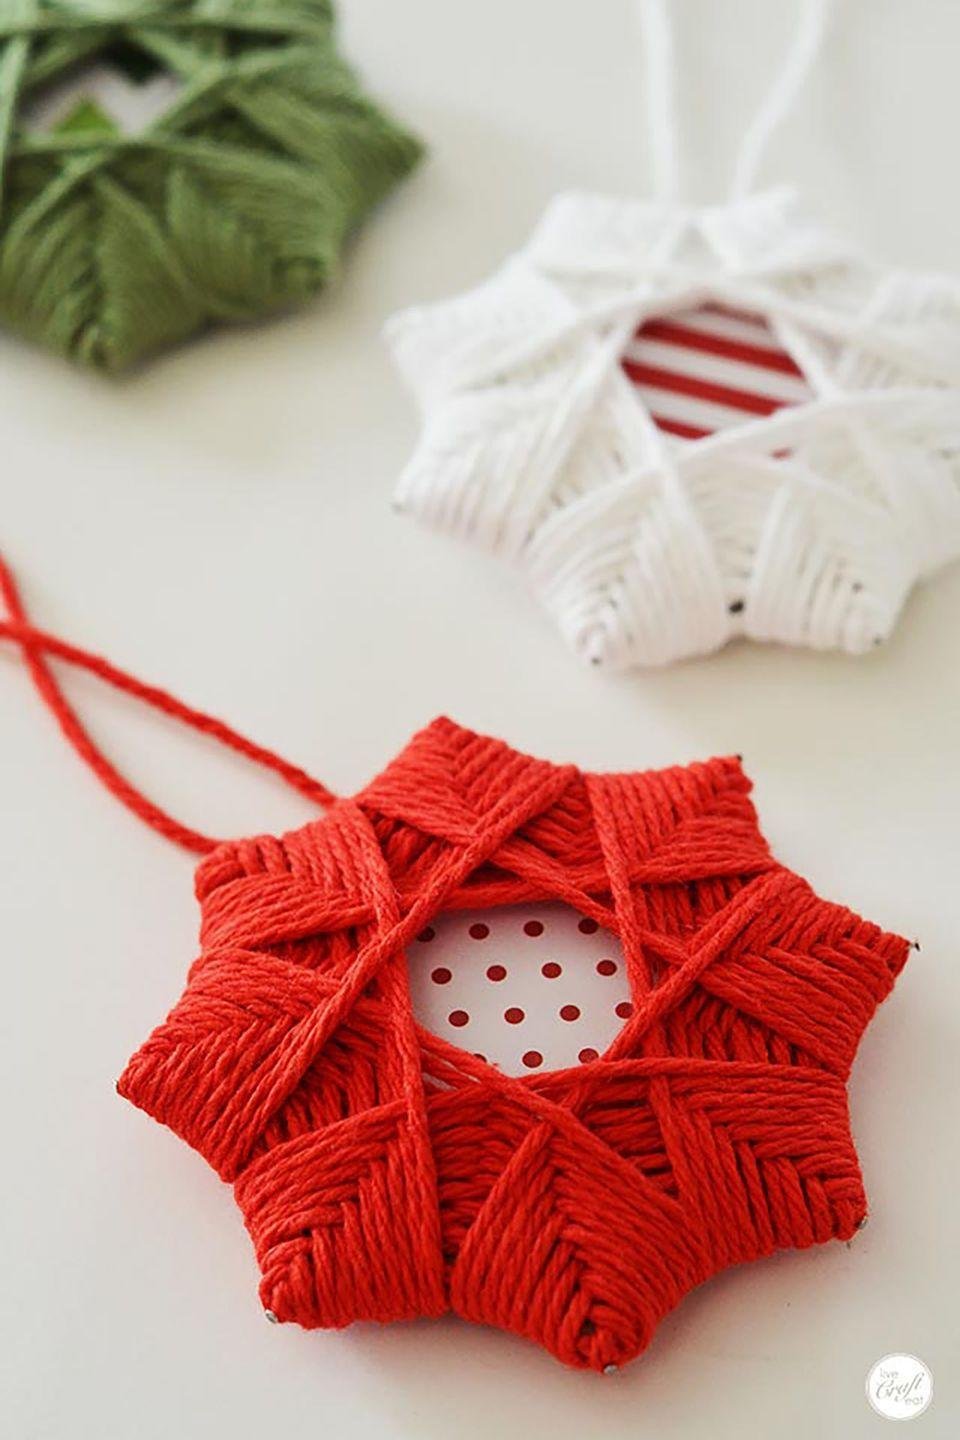 "<p>These cute Christmas star ornaments only require two supplies: festive yarn and pretty cardstock.</p><p><strong>Get the tutorial at <a href=""http://www.livecrafteat.com/craft/homemade-christmas-tree-star-ornaments/"" rel=""nofollow noopener"" target=""_blank"" data-ylk=""slk:Live Craft Eat"" class=""link rapid-noclick-resp"">Live Craft Eat</a>. </strong><br></p><p><a class=""link rapid-noclick-resp"" href=""https://www.amazon.com/Lion-Brand-Yarn-761-113-Cotton/dp/B017T97ABG/?tag=syn-yahoo-20&ascsubtag=%5Bartid%7C10050.g.1070%5Bsrc%7Cyahoo-us"" rel=""nofollow noopener"" target=""_blank"" data-ylk=""slk:SHOP RED YARN"">SHOP RED YARN</a></p>"